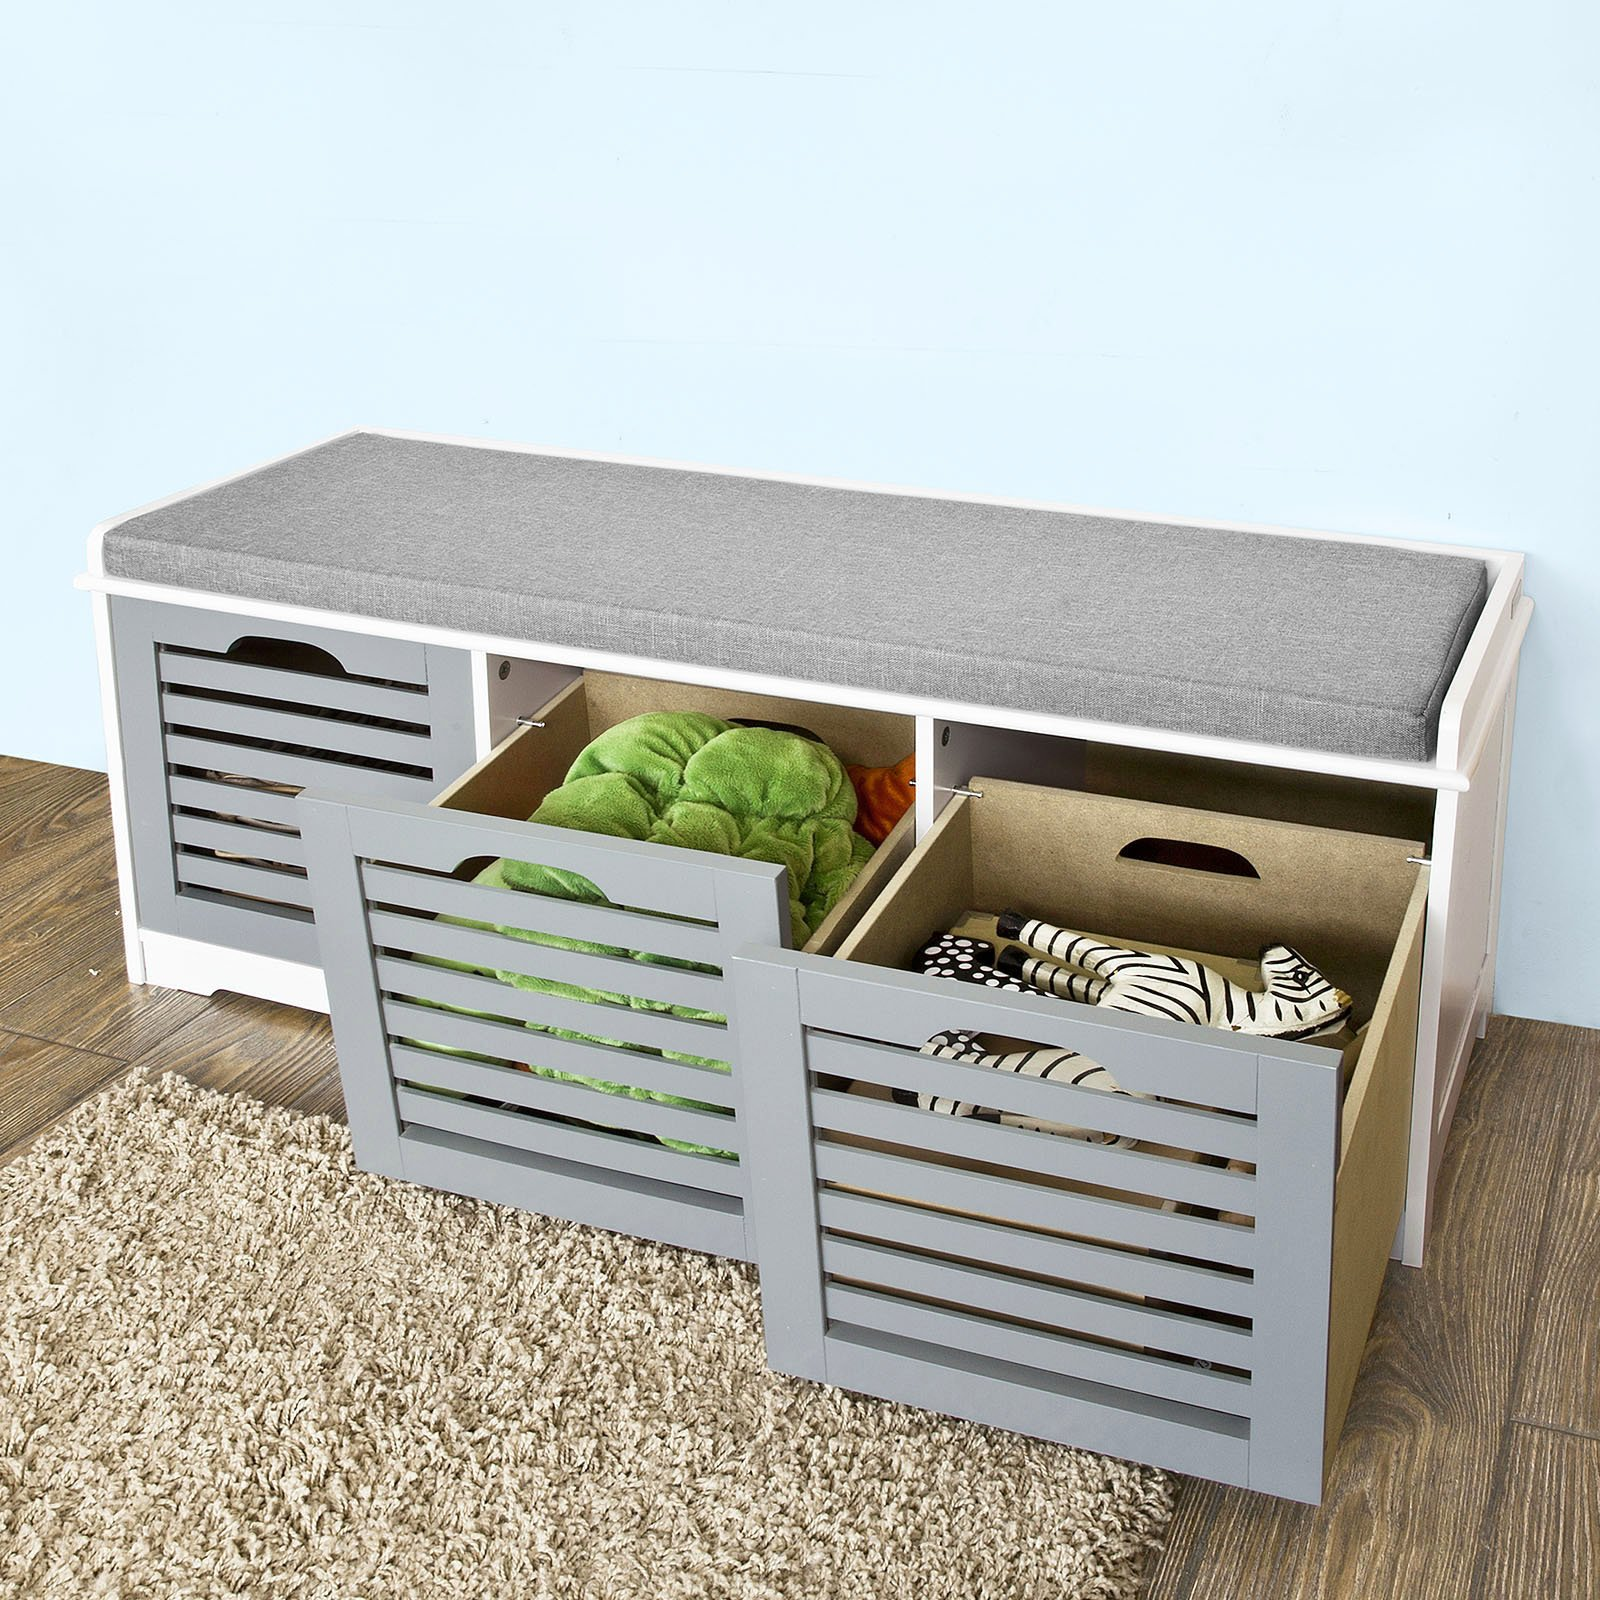 Benches With Storage Seating: Haotian FSR23-HG, Storage Bench With 3 Drawers Padded Seat